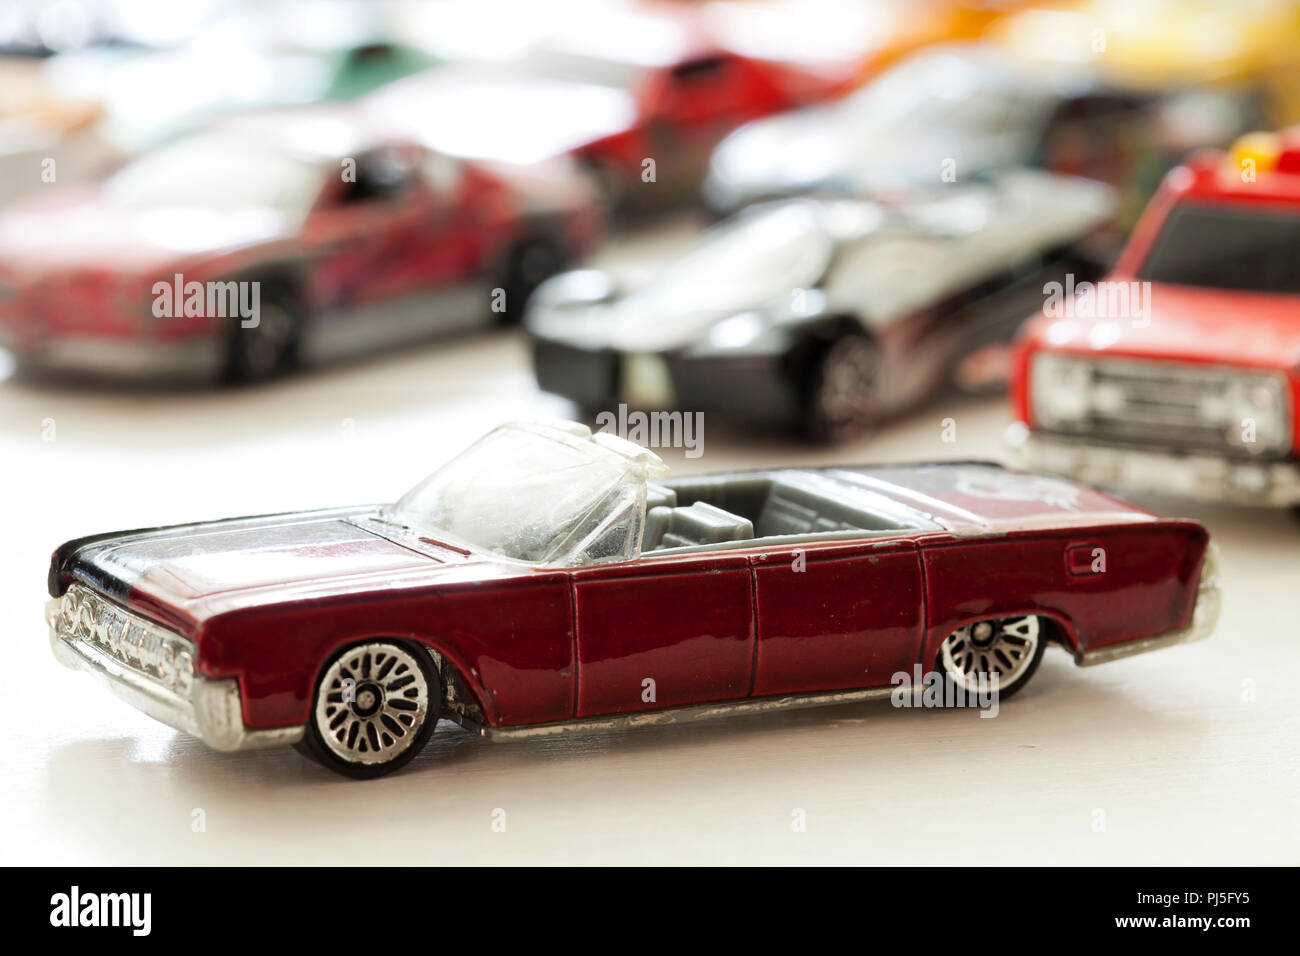 1964 Lincoln Continental convertible Hot Wheels toy car - USA - Stock Image